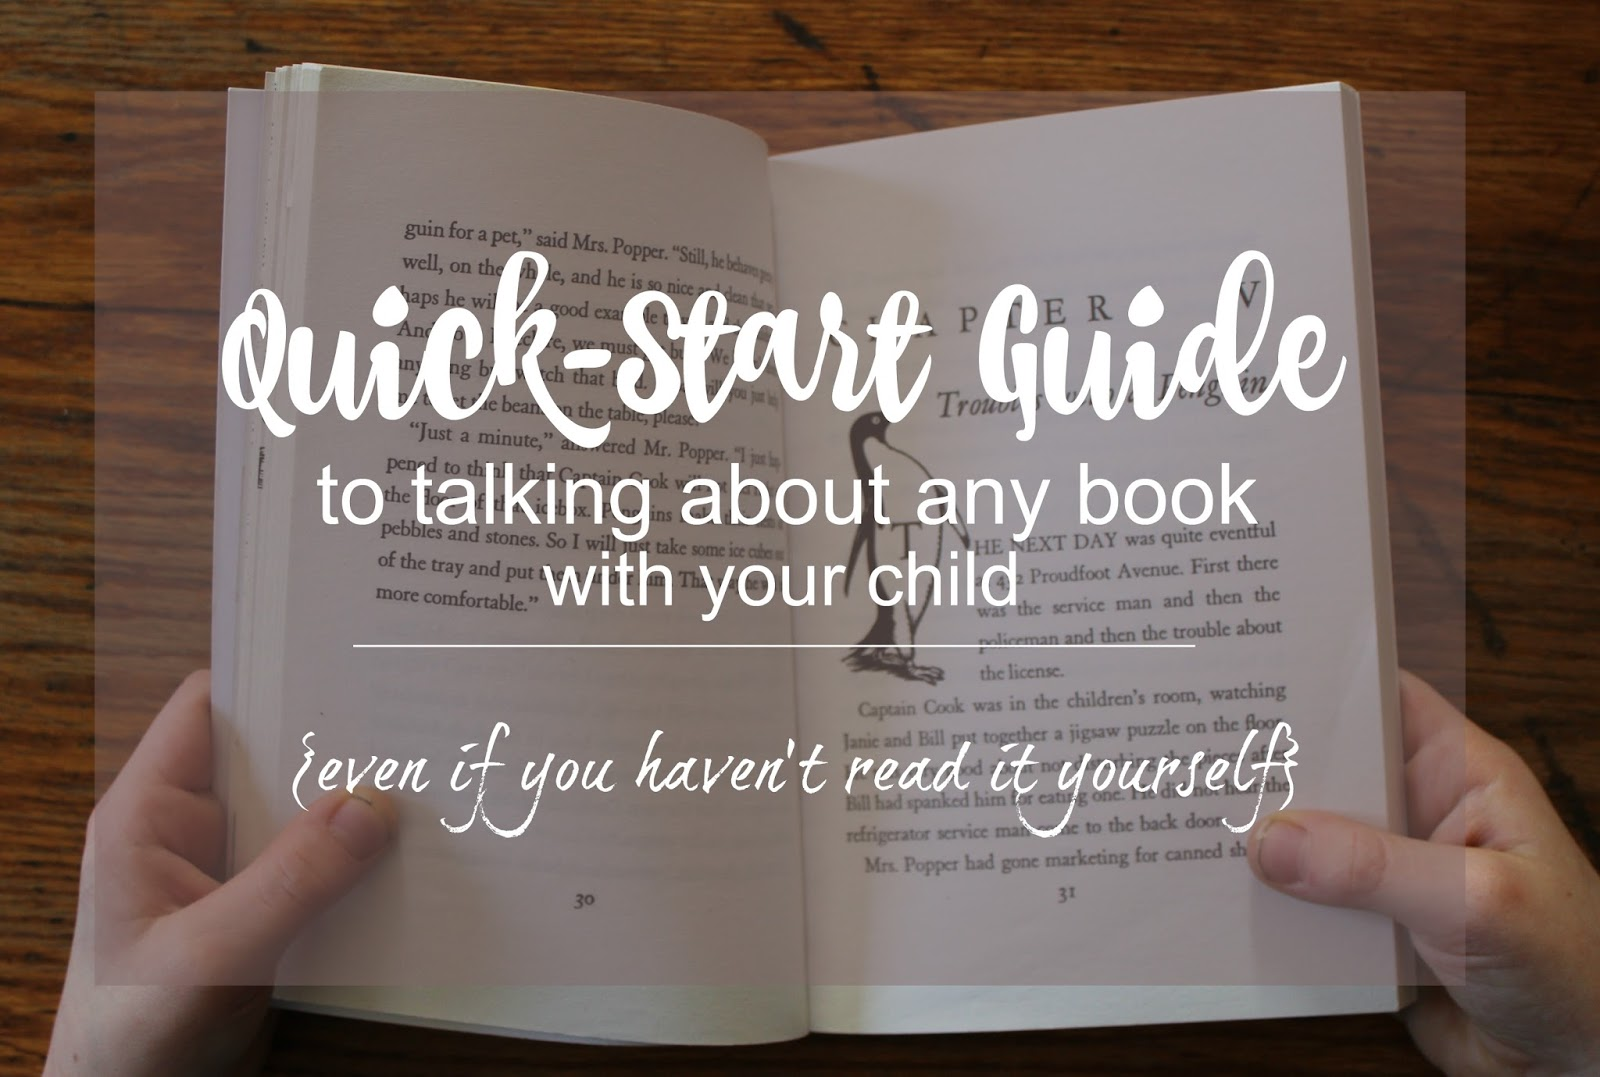 The unlikely homeschool the quick start guide to talking about quick start guide to talking about any book with a child even if you solutioingenieria Gallery